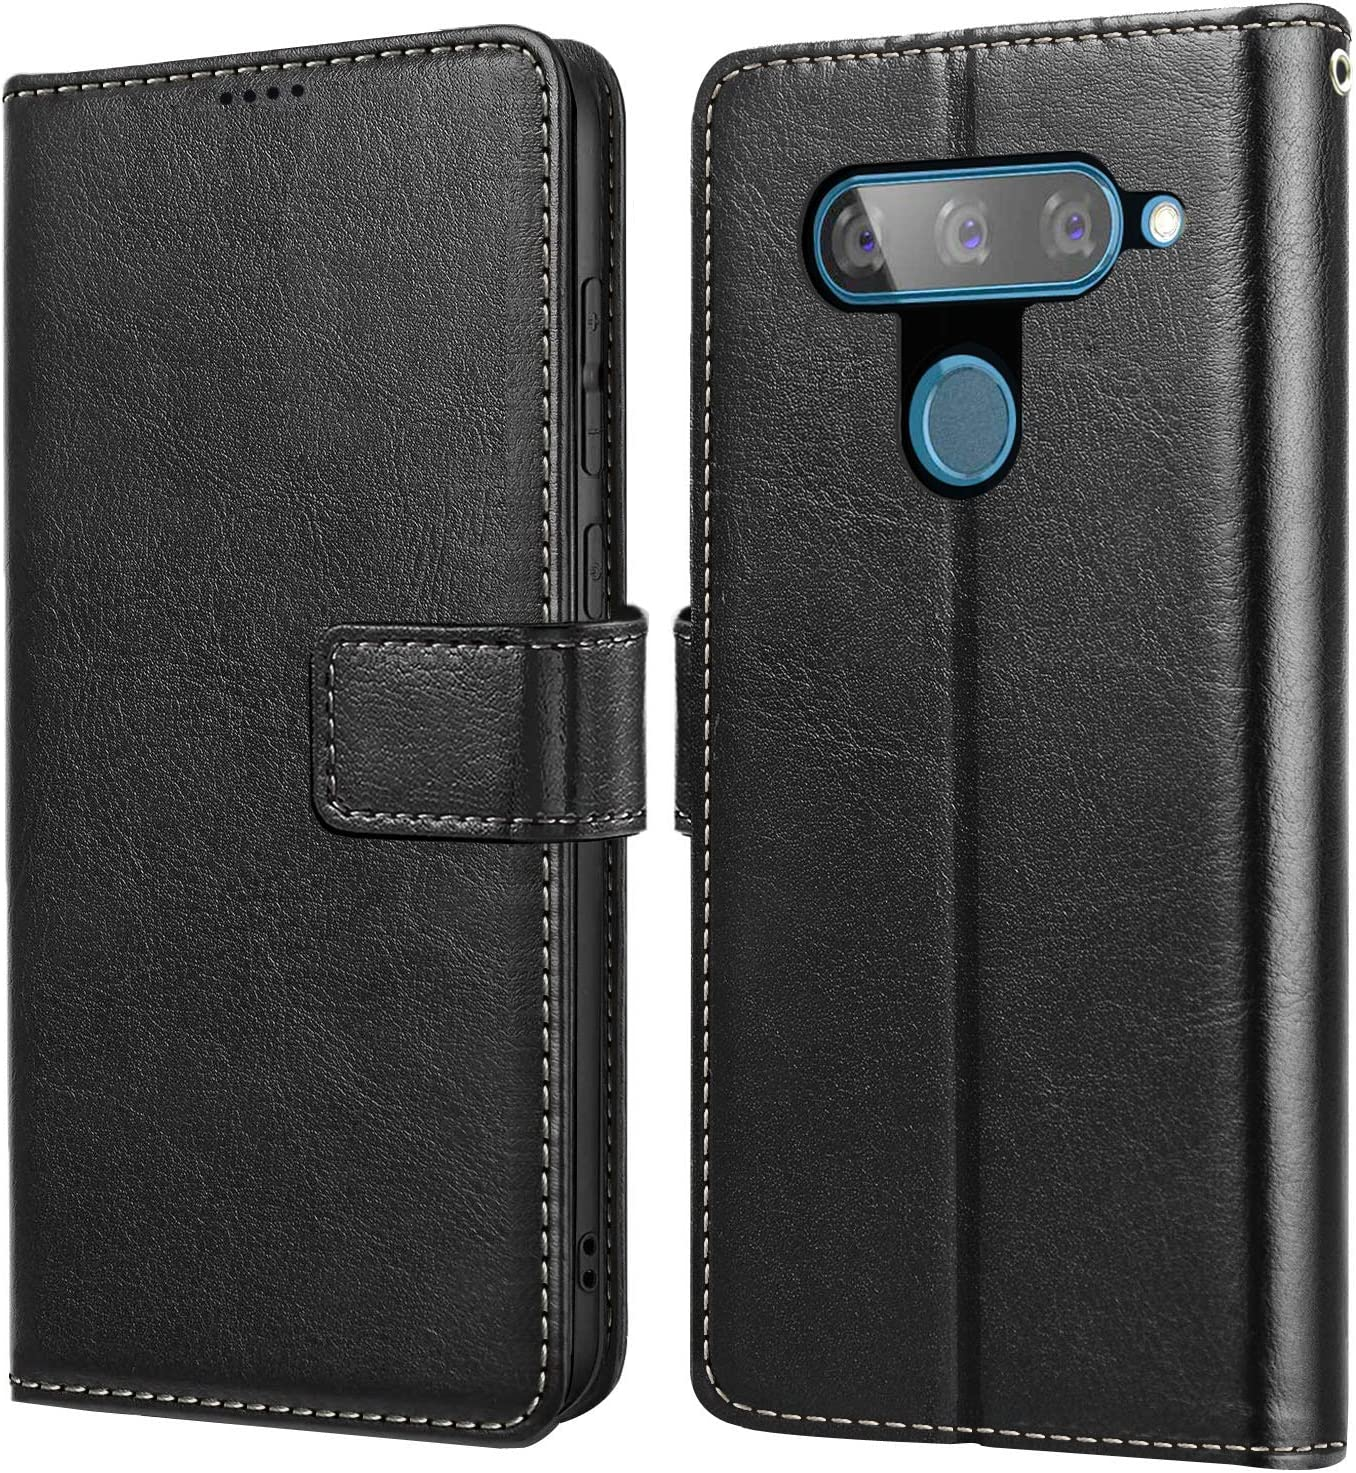 YECOSIN Phone Case for LG V40 and LG V40 ThinQ Flip Leather Cover for LG V40 ThinQ Holsters Wallet Case Black